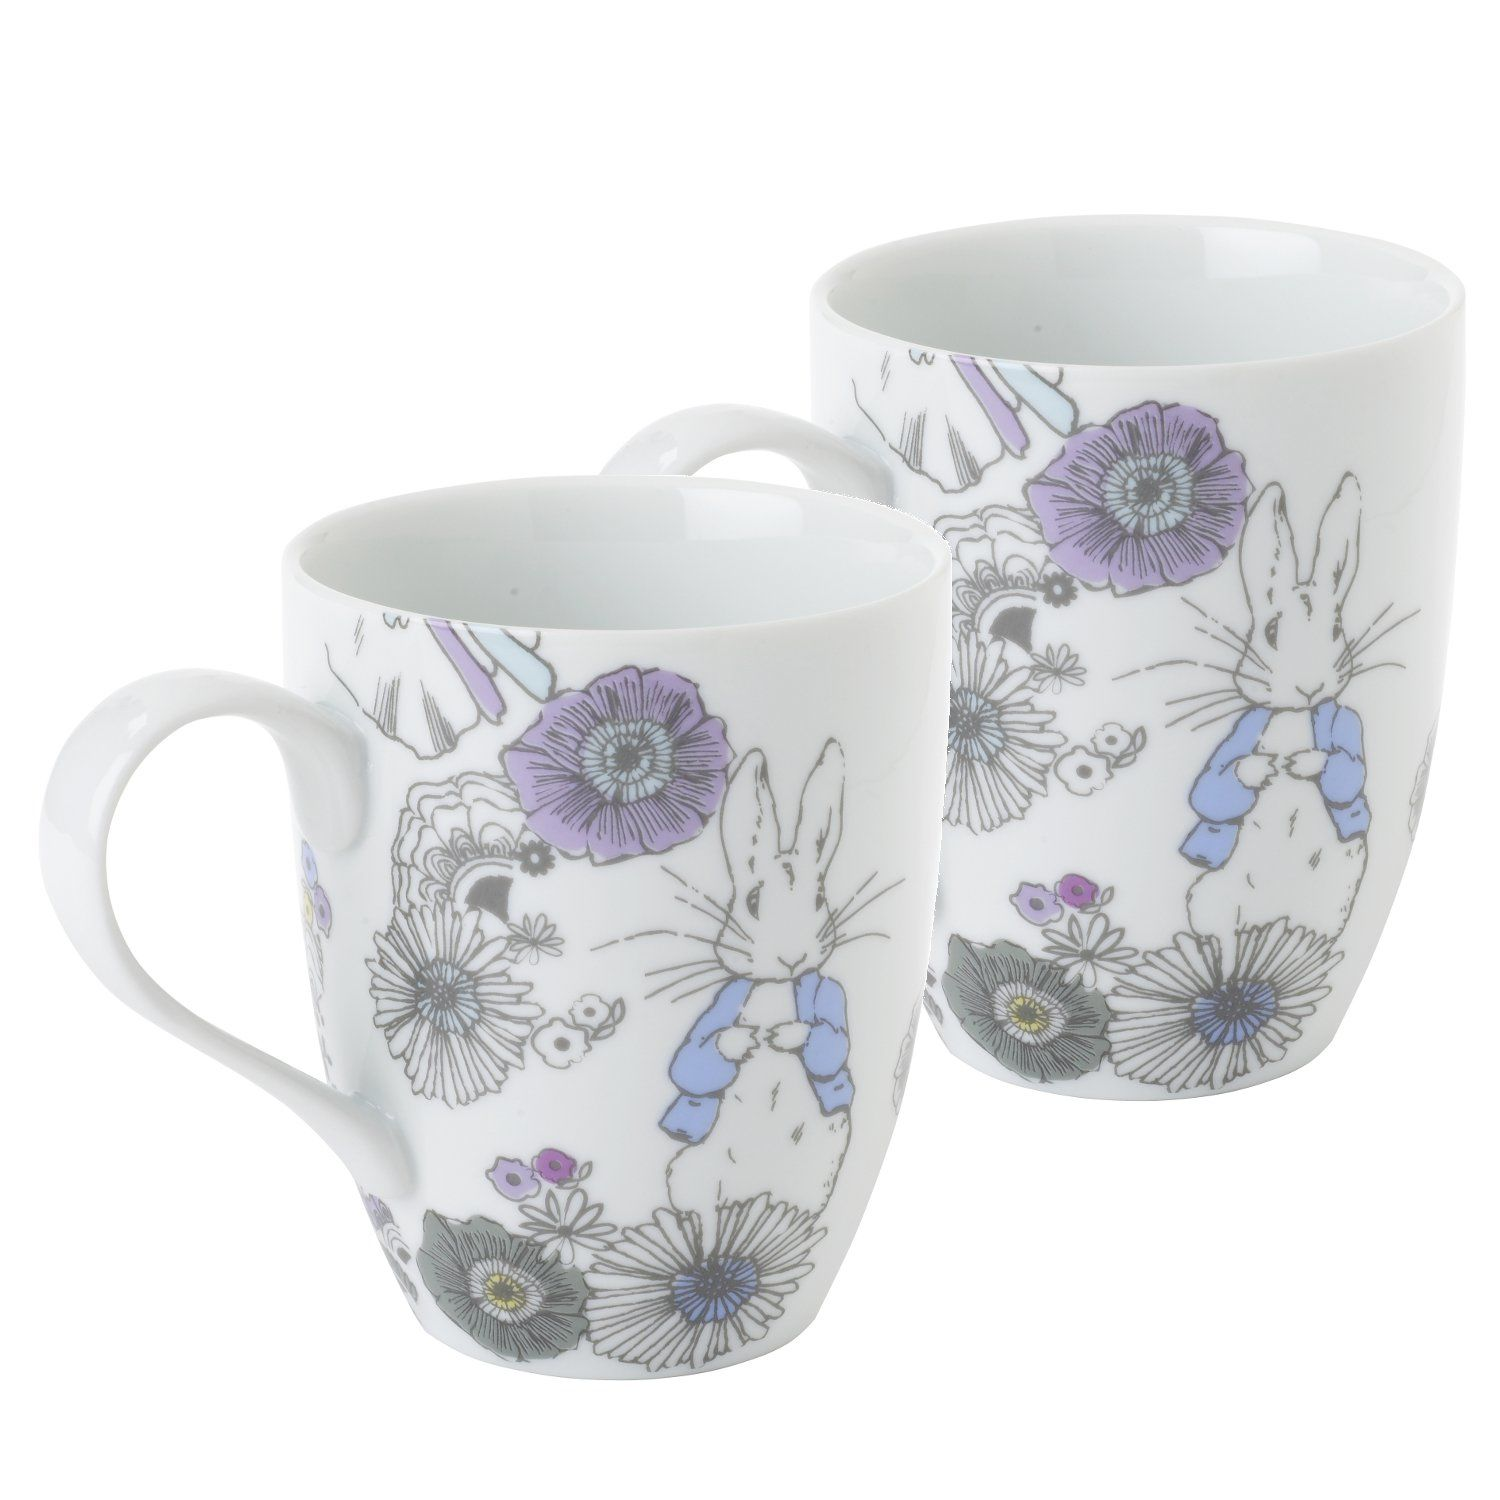 Peter Rabbit Peter Rabbit Contemporary Mug (Set of 2)